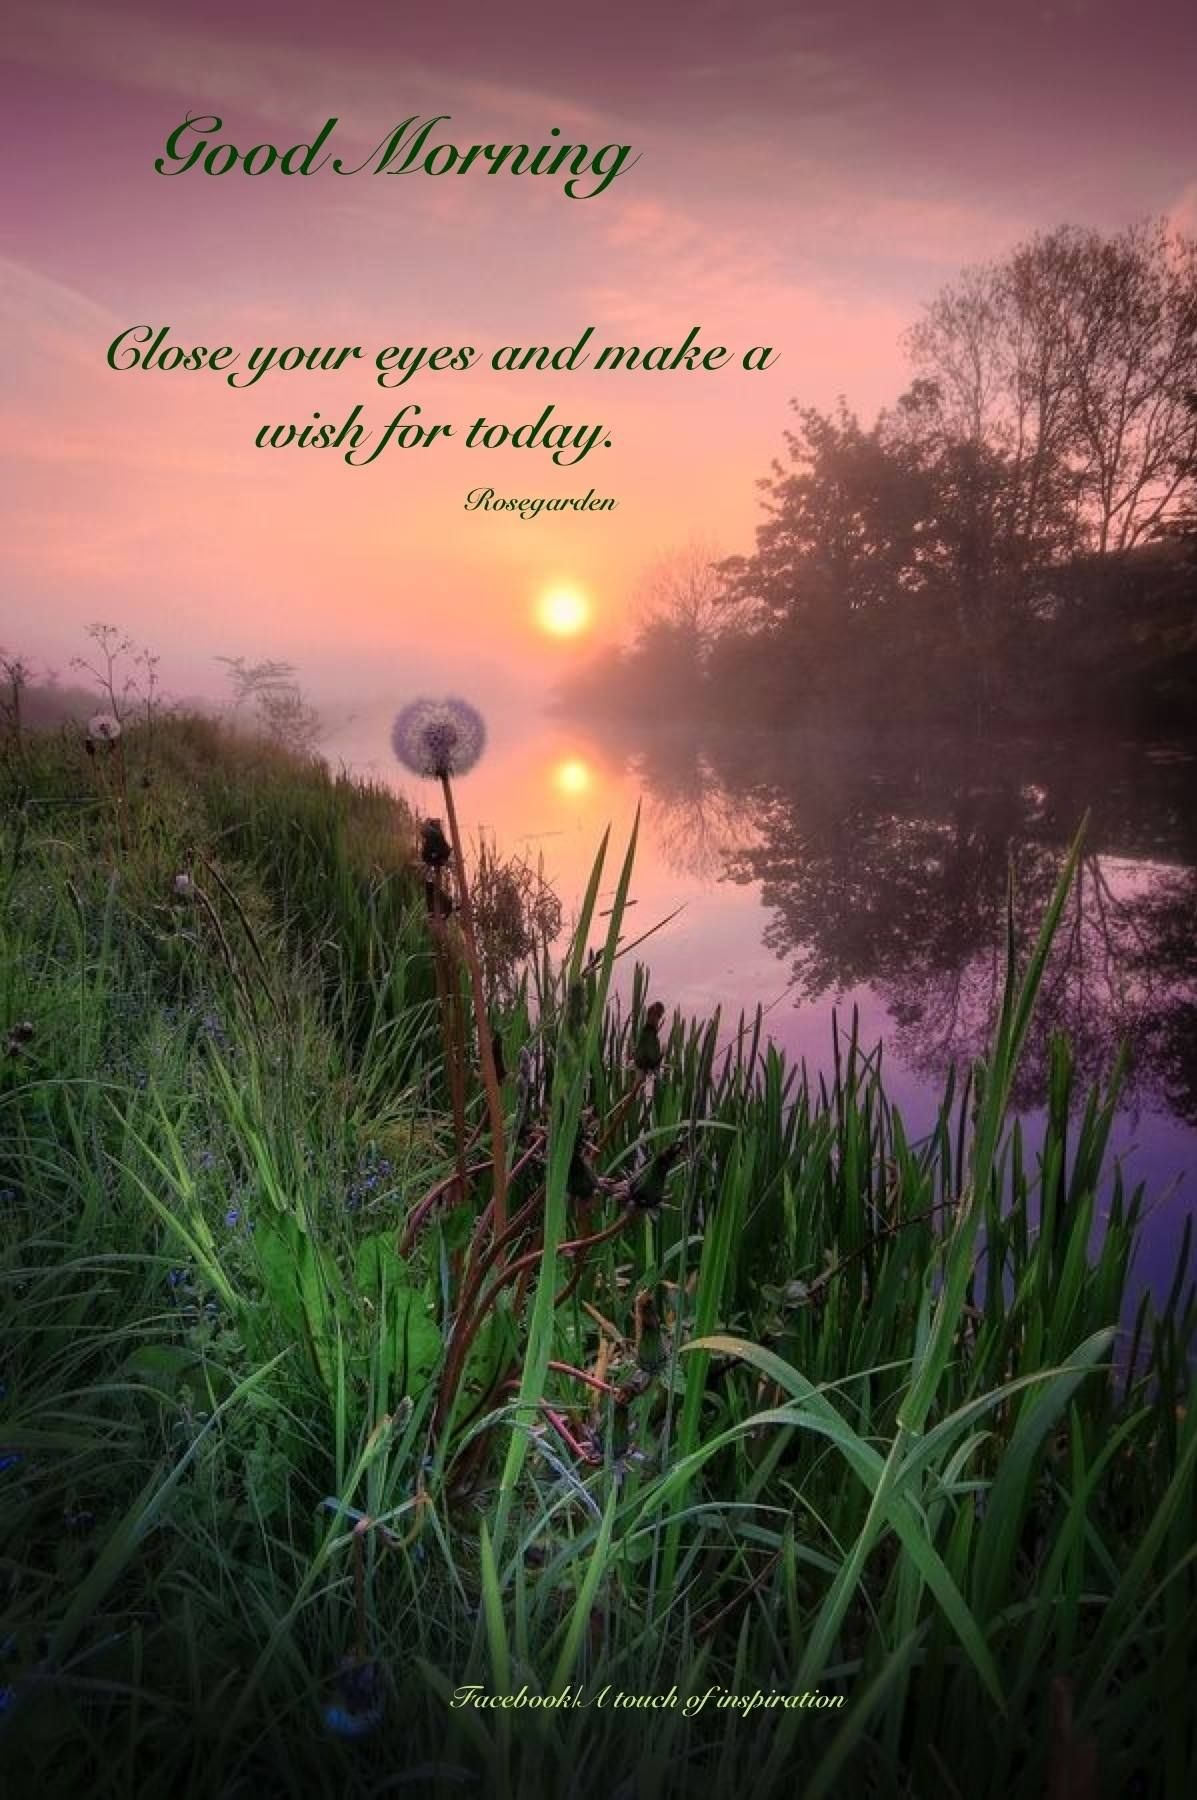 Good Morning Rise And Shine In German : Good morning rise and shine ritual pinterest